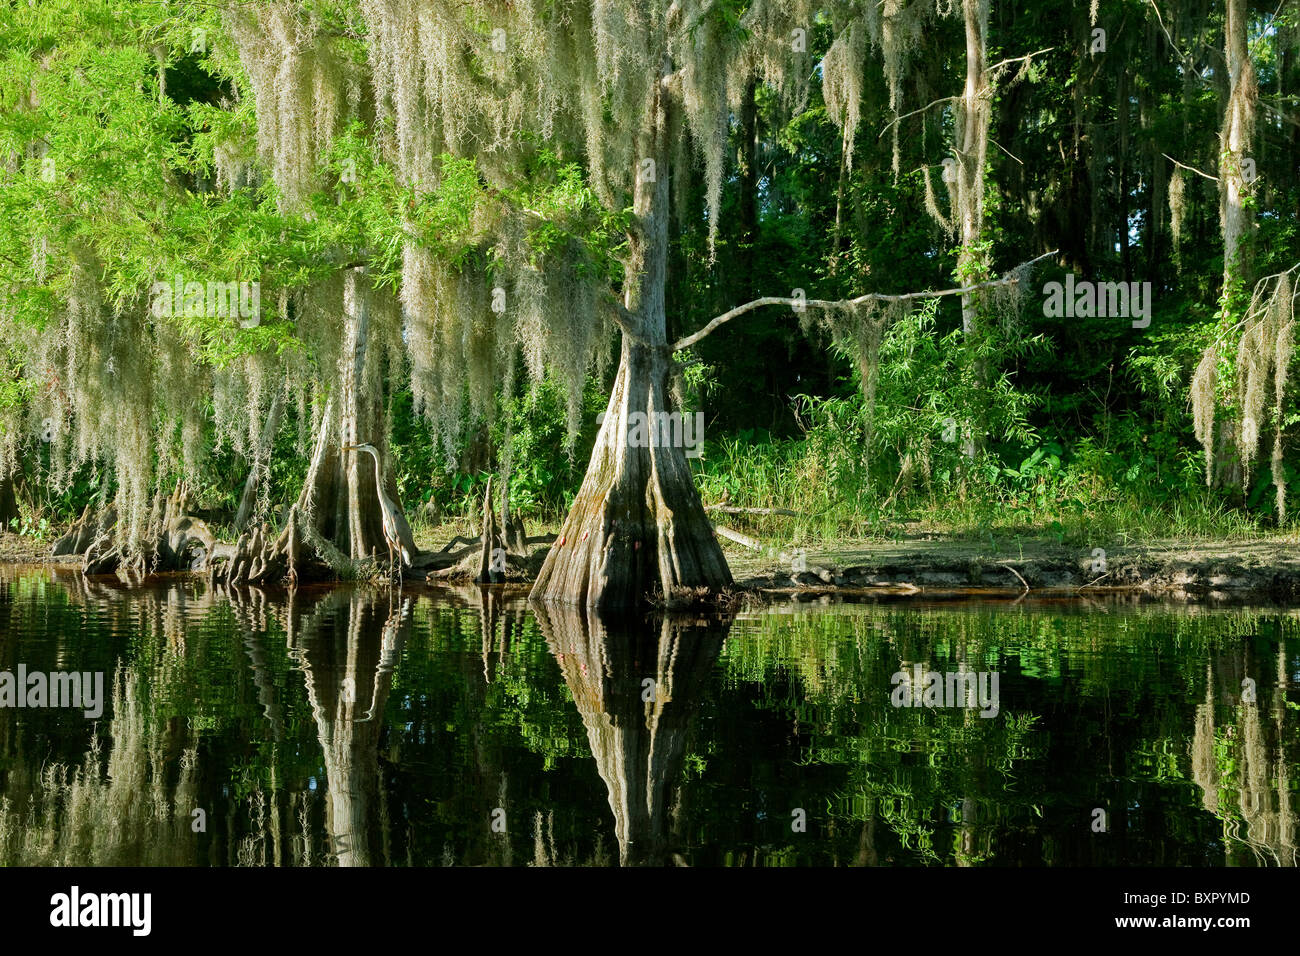 Bald Cypress Trees reflecting in the water in a florida swamp on a warm summer day - Stock Image